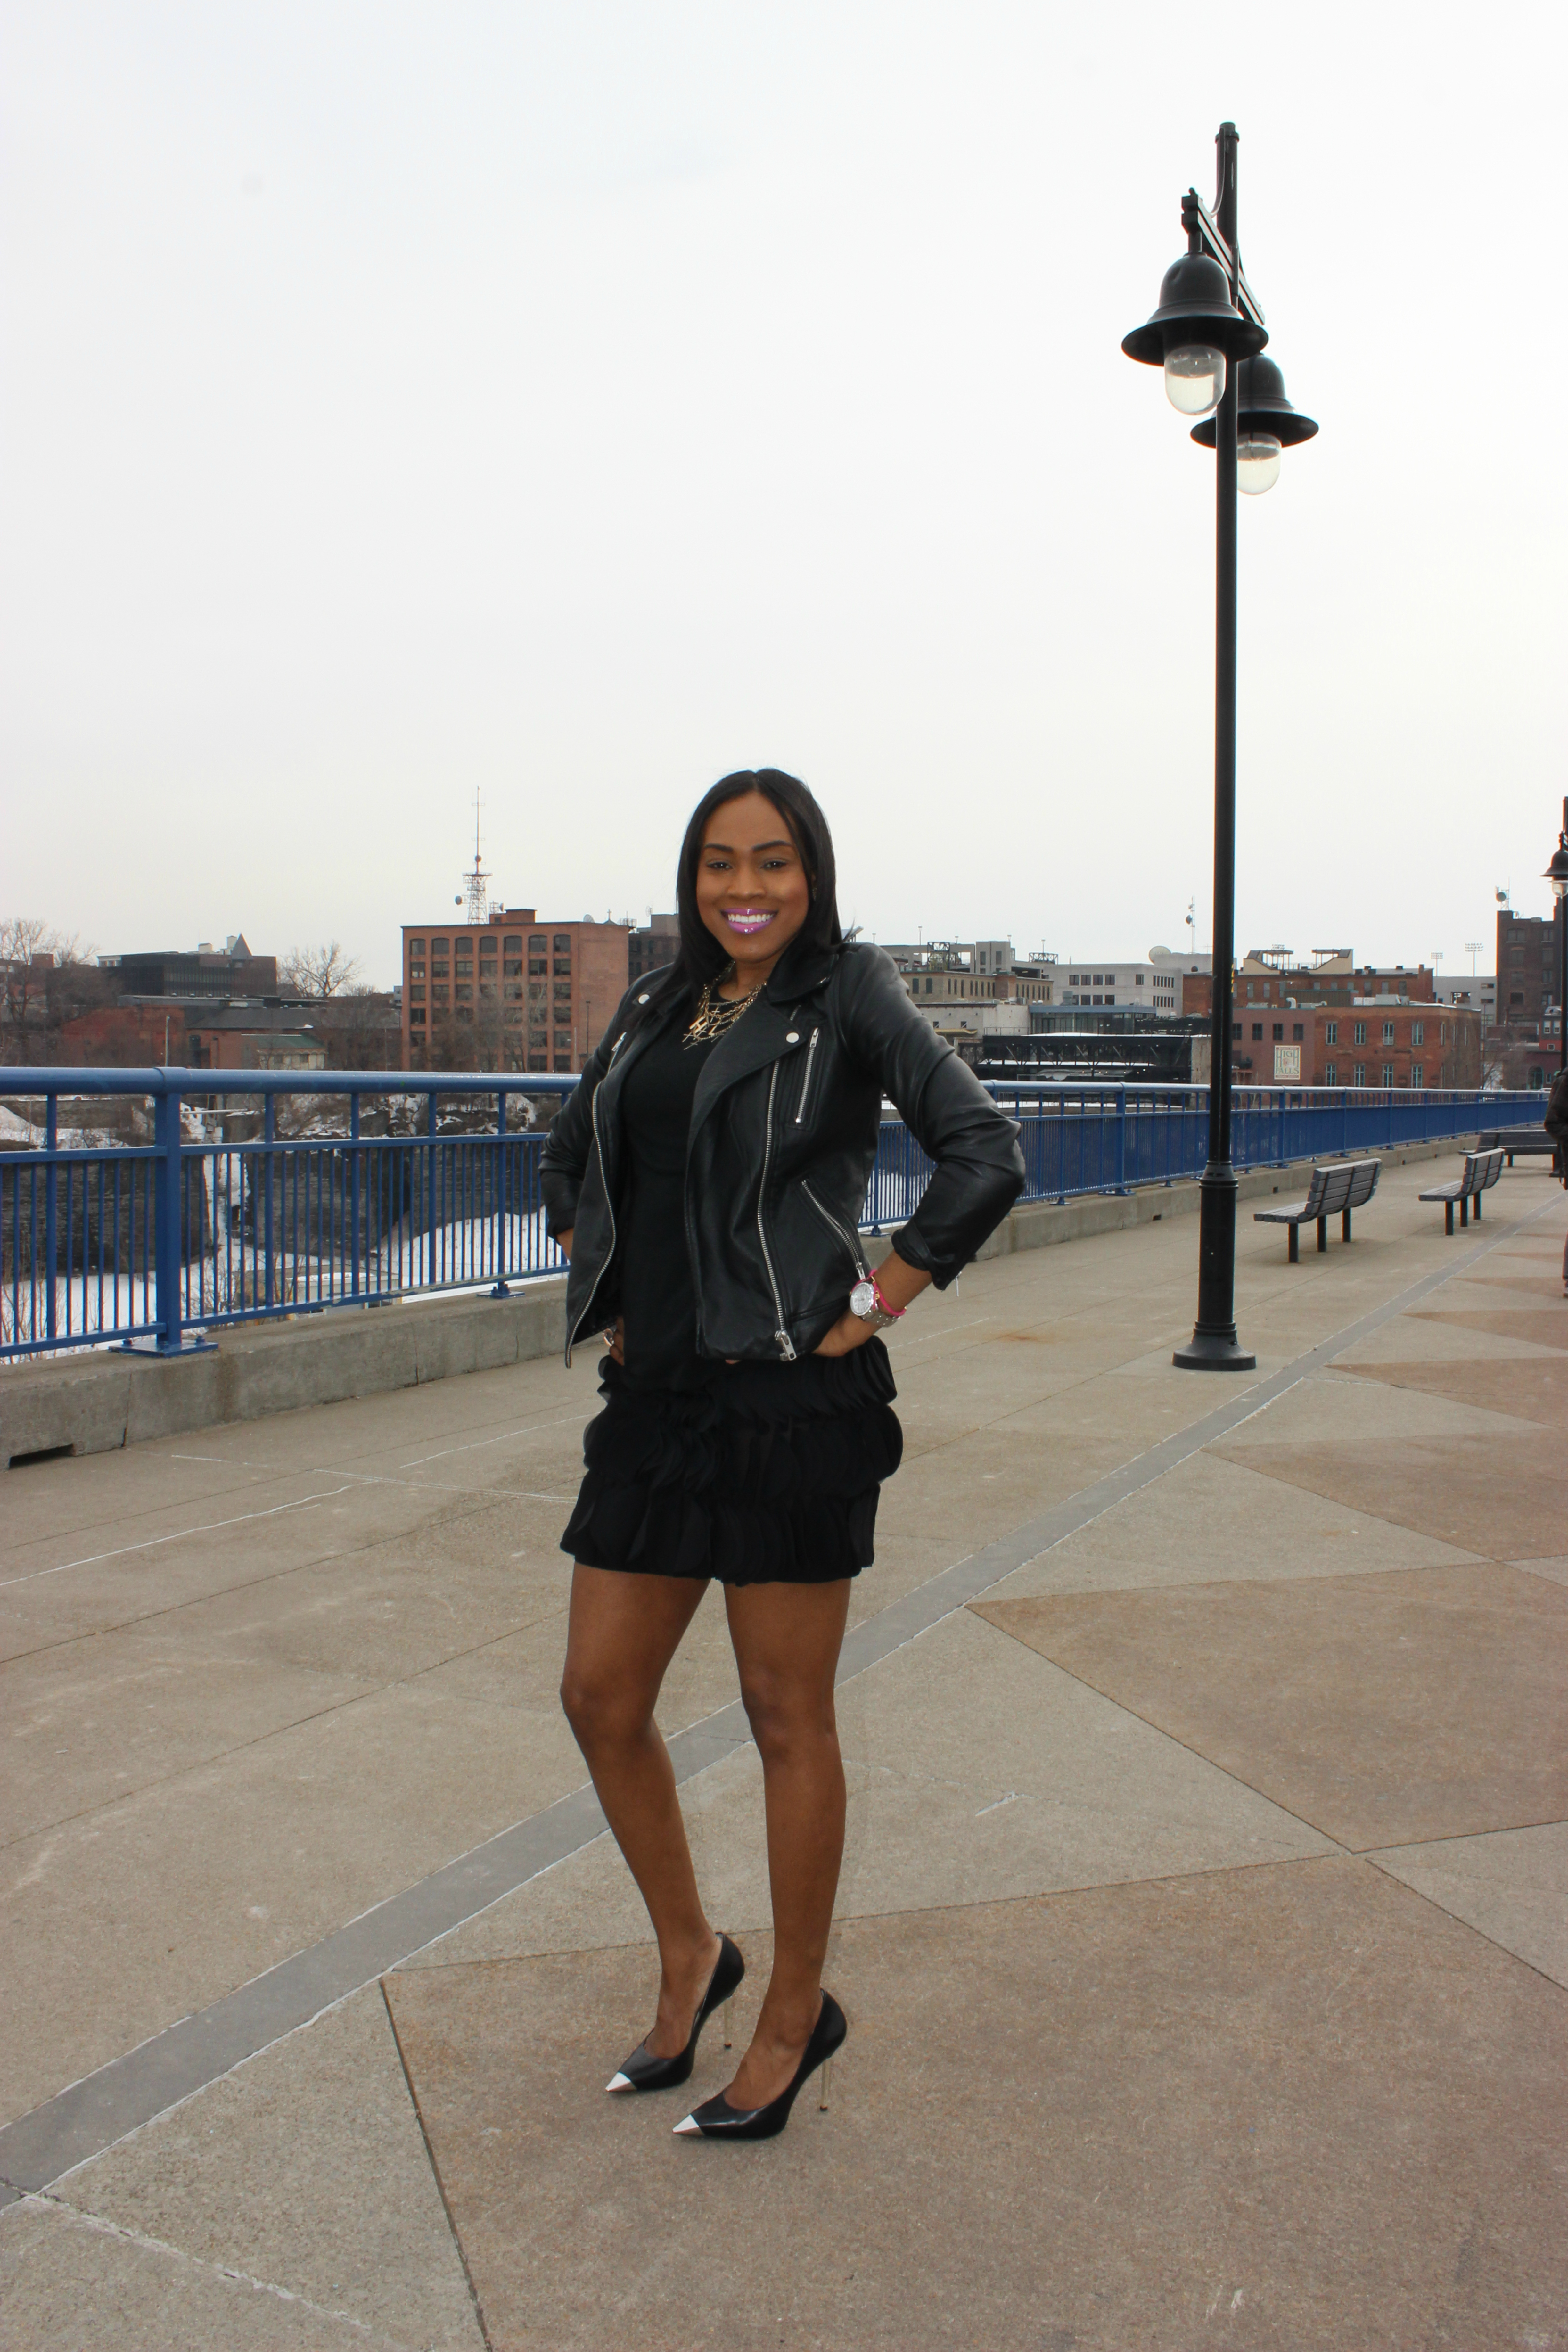 Style-files-Pretty-Price-Black -Moto-Jacket-Michael Kors-Silve-heel-PumPs-Thrifted-Skirt-Oohlalablog-